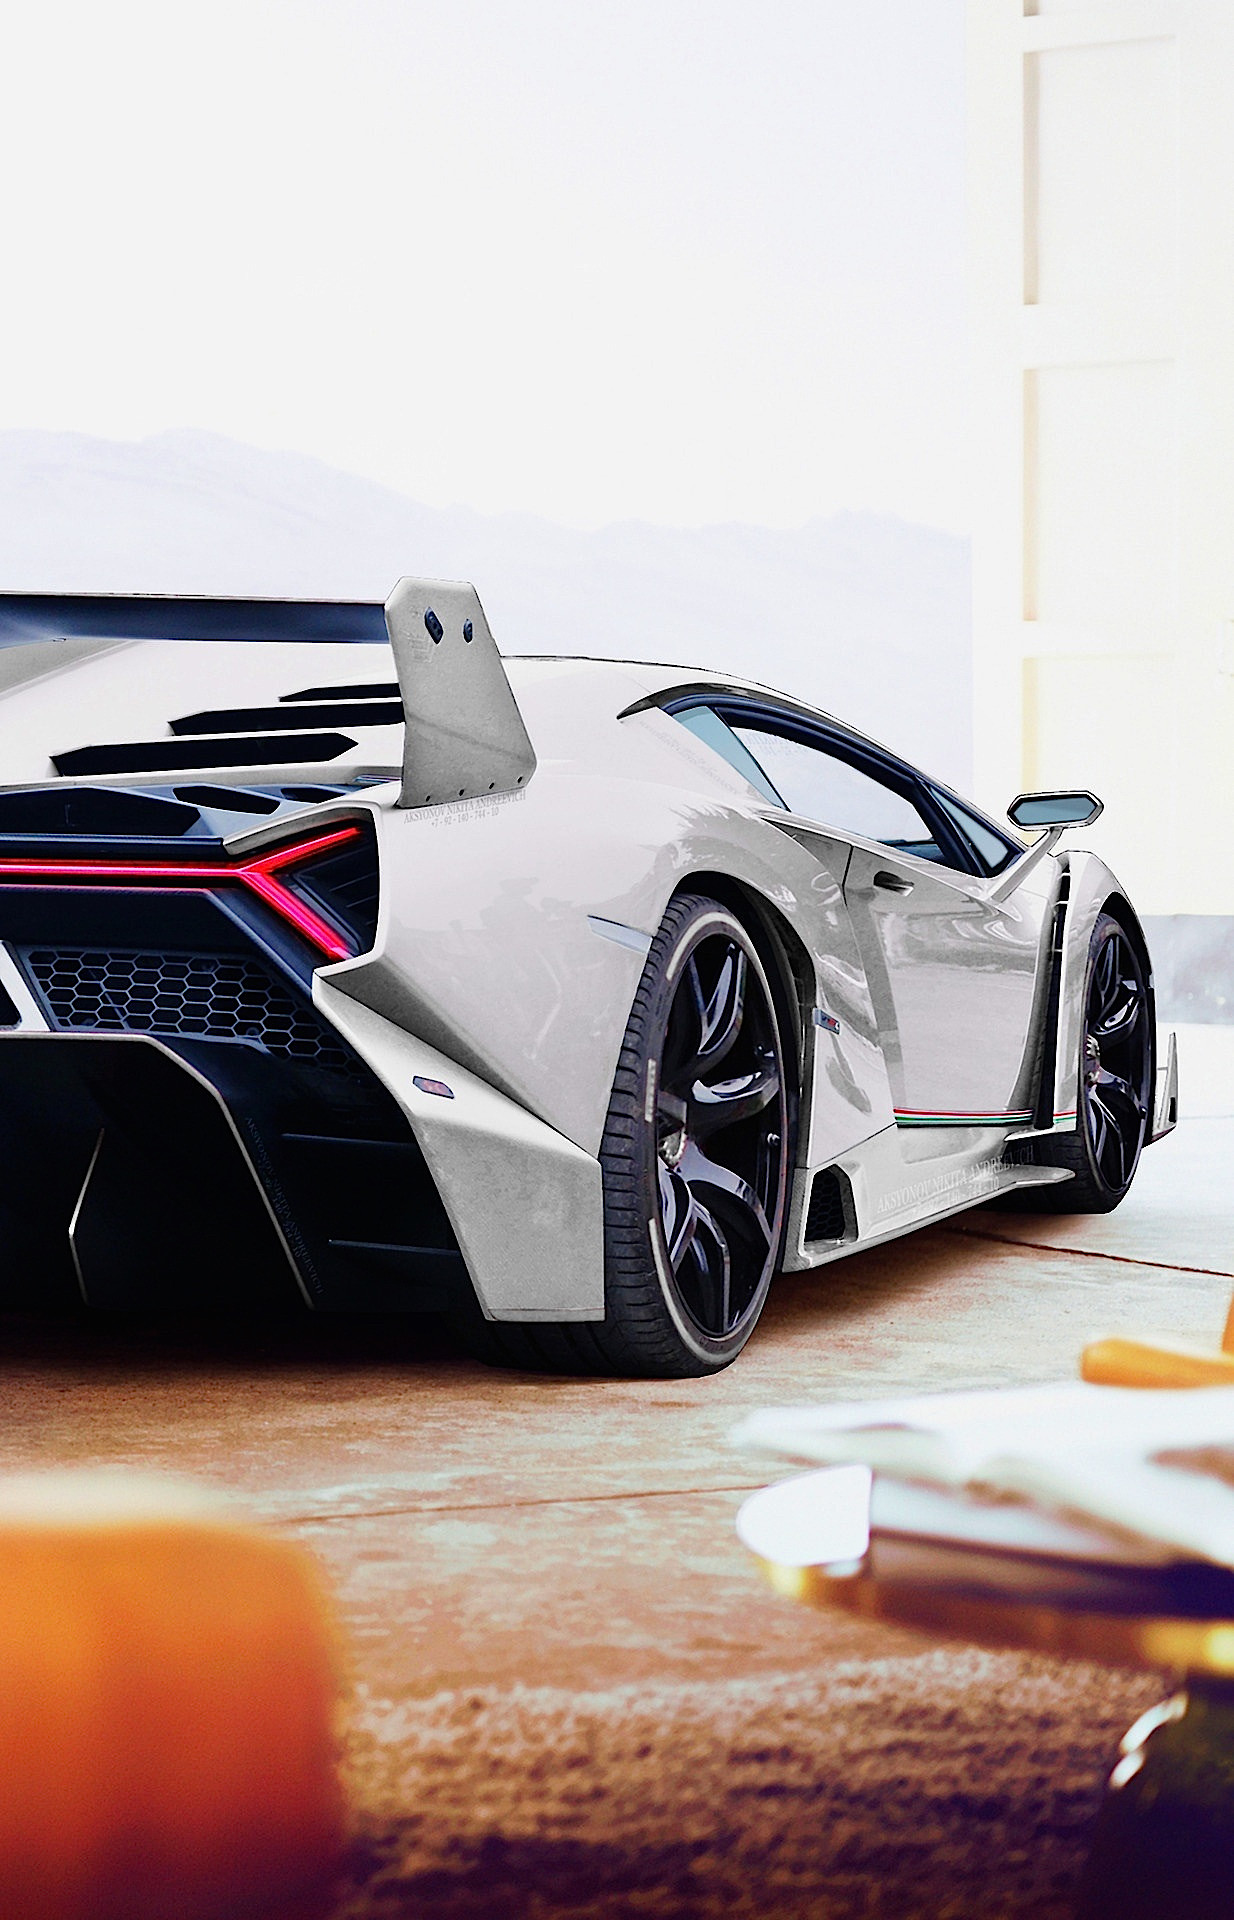 1920x1080 Lamborghini Veneno Mid Engine Hypercar Wallpapers HD Desktop And Mobile Backgrounds